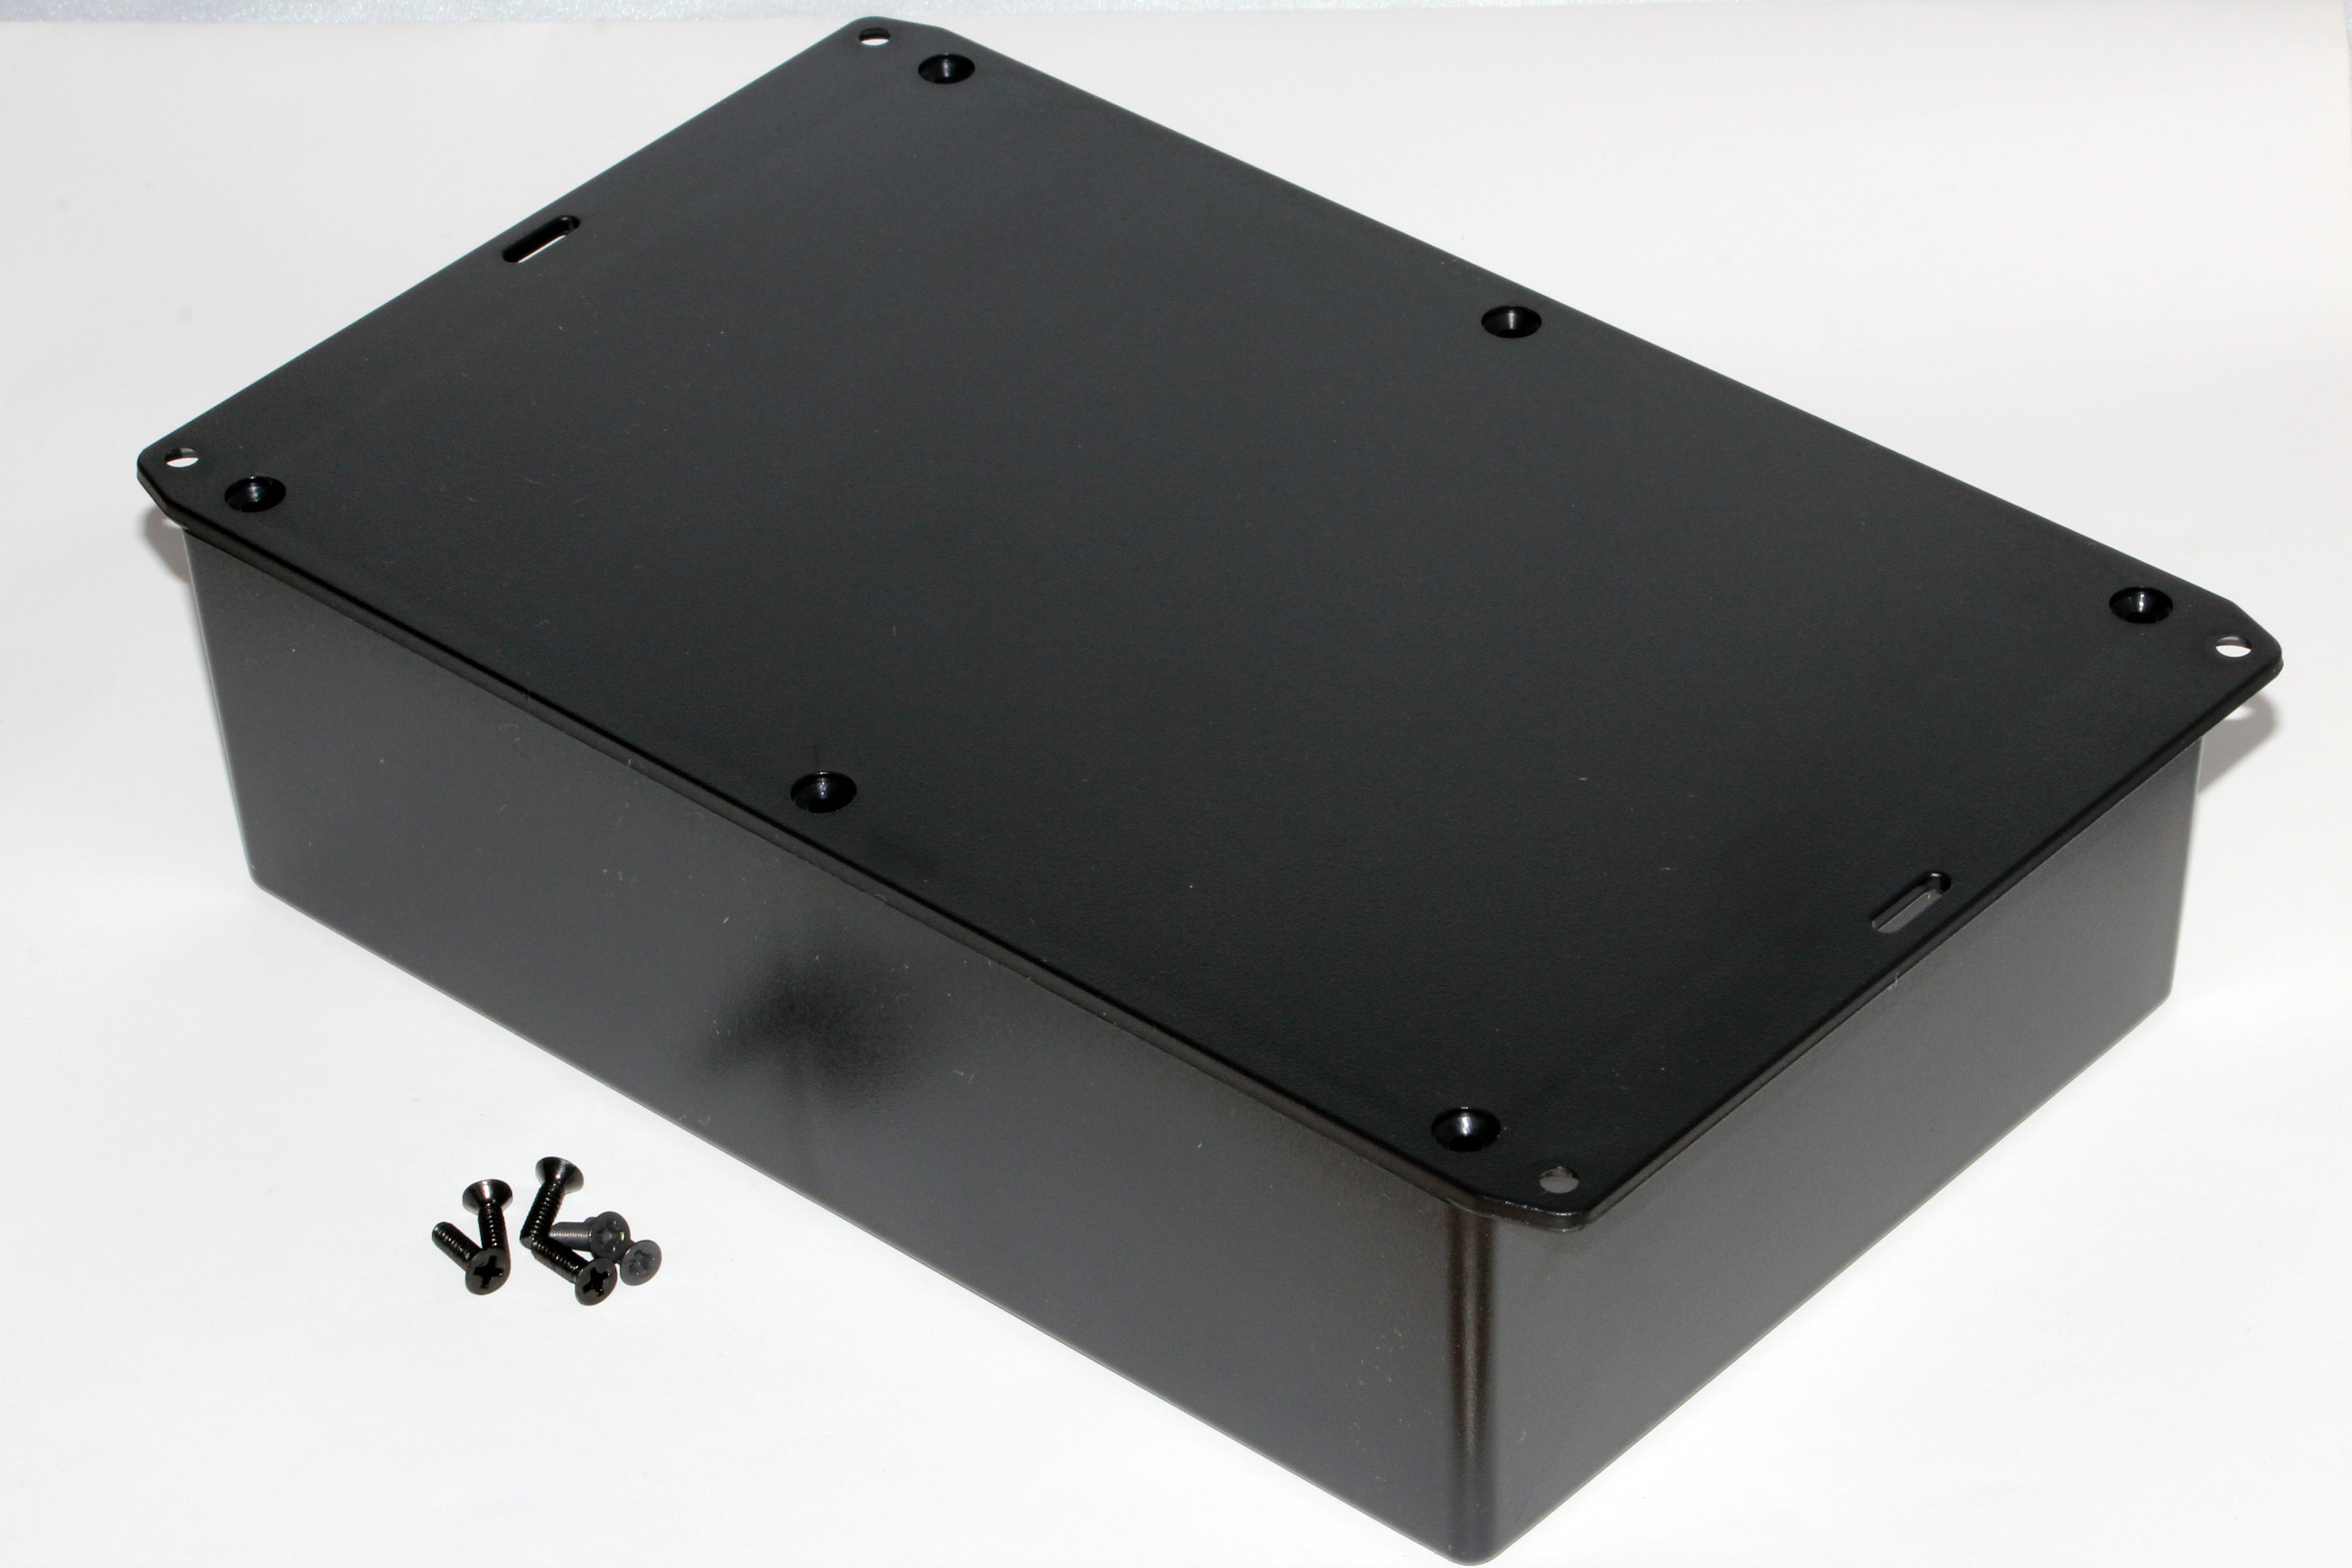 1591XXFFLBK - 1591XX Series ABS Plastic Mult-Purpose Enclosures with Mounting Flanges